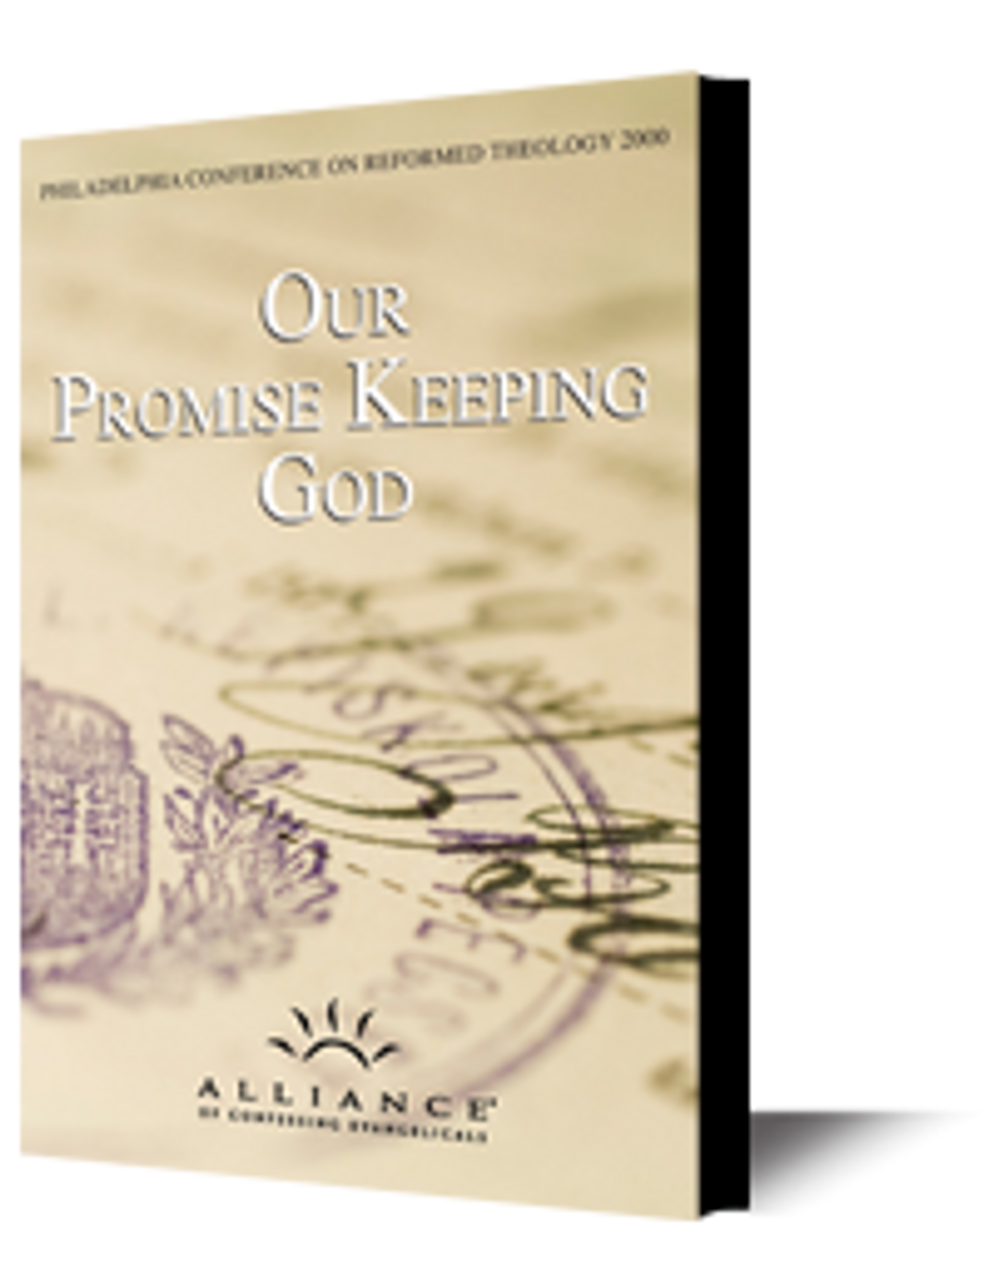 Our Promise Keeping God (mp3 Disc)